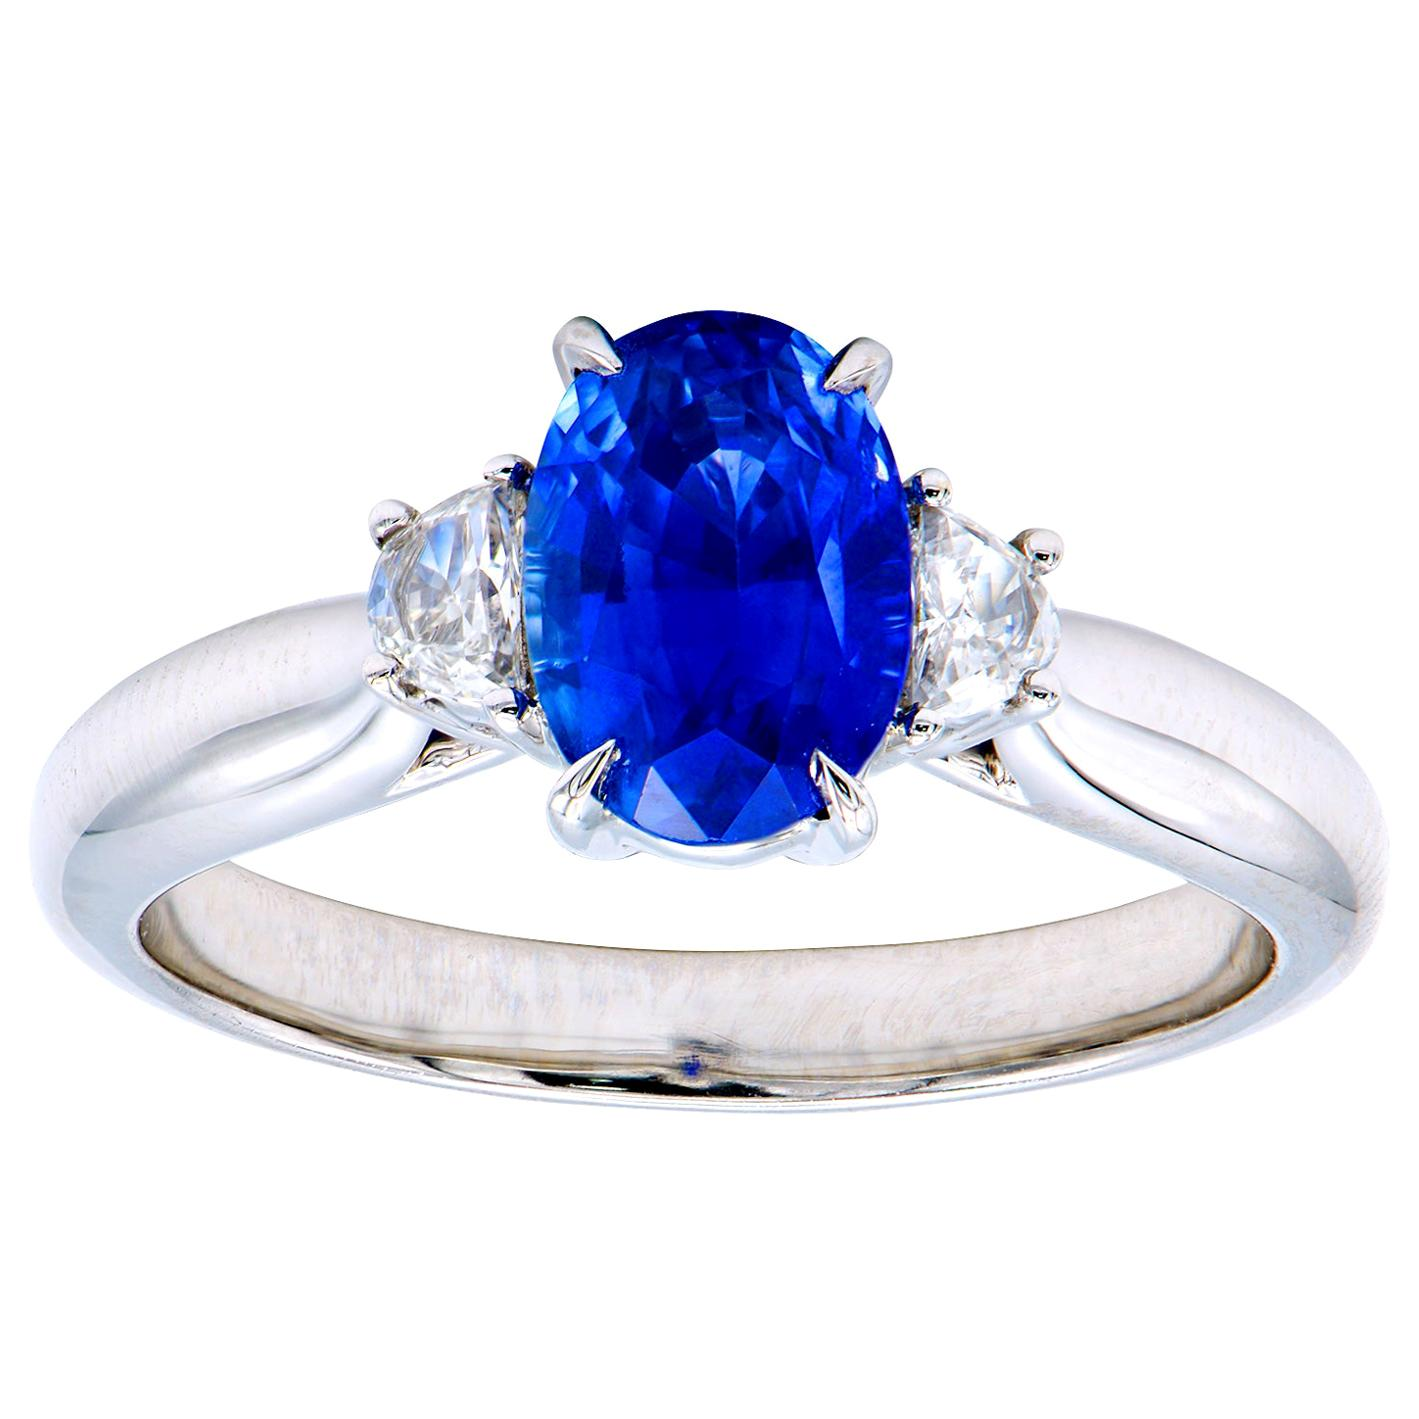 1.8 Carat Oval Sapphire Ring with Half Moon Side Stones